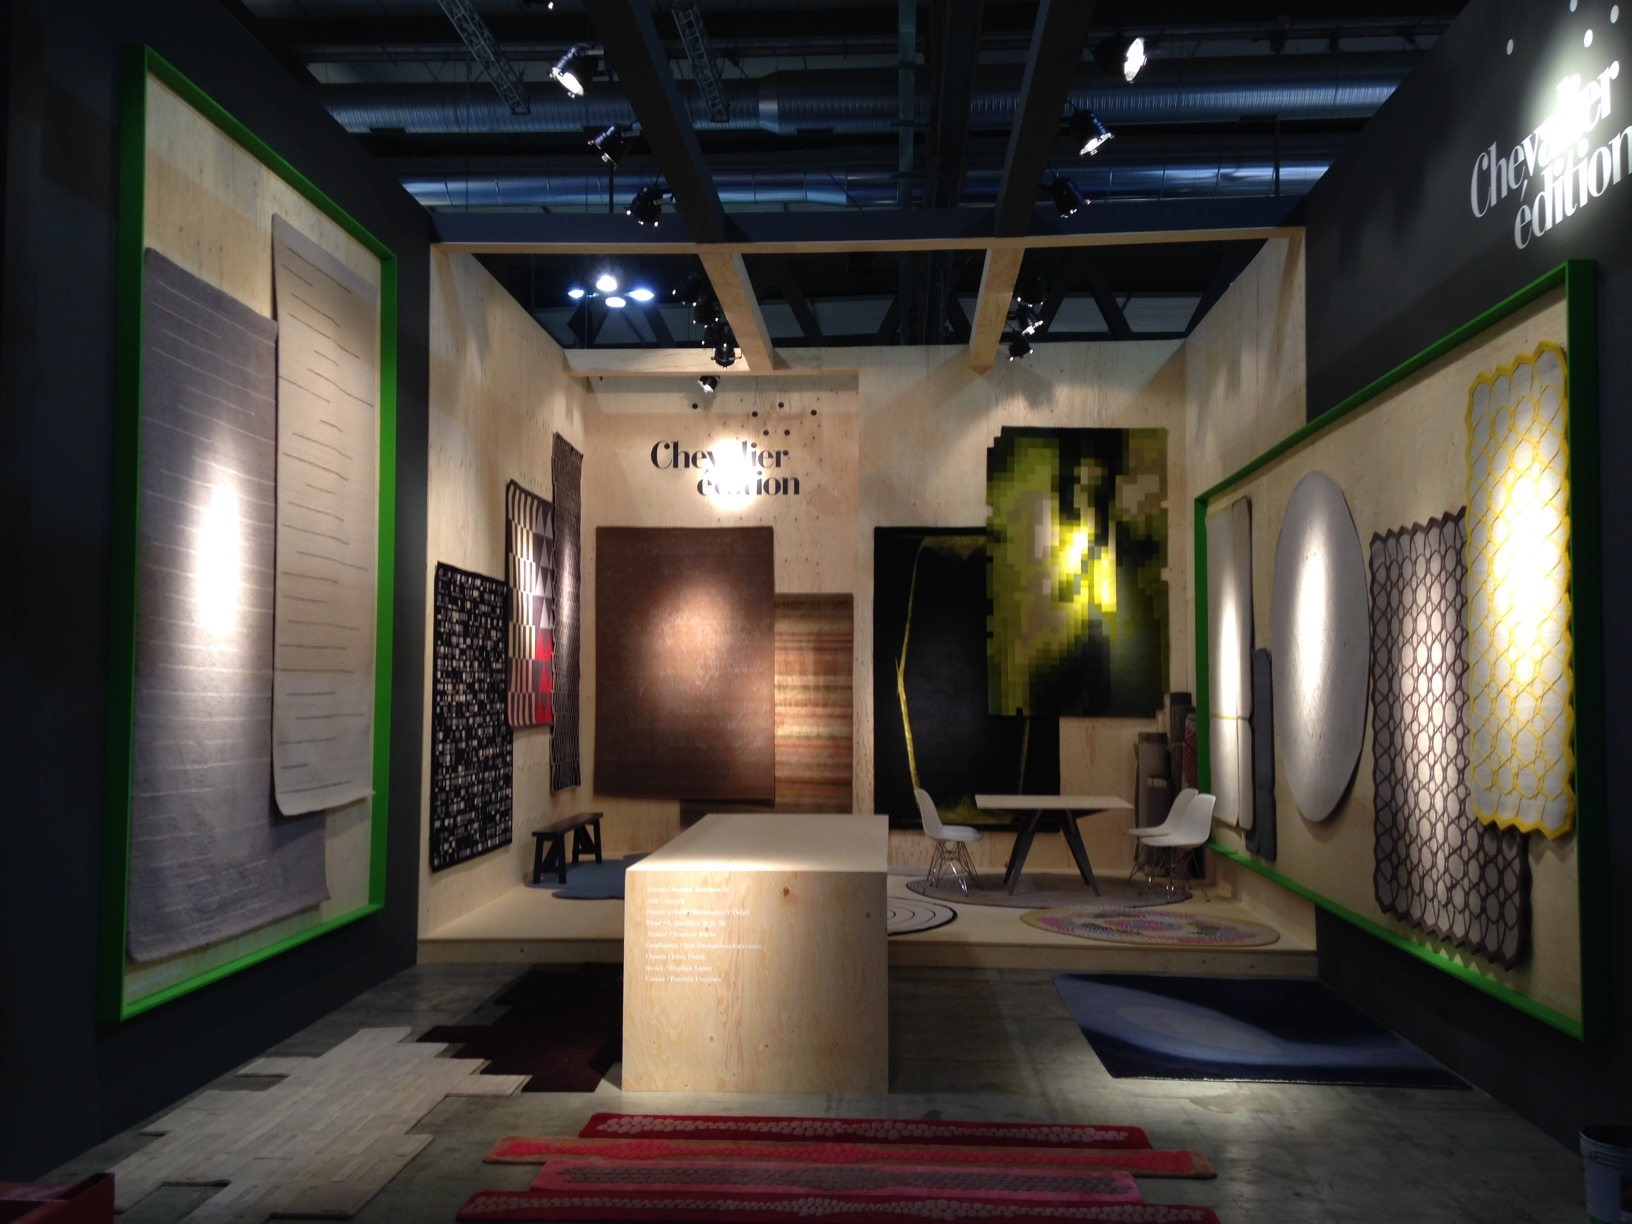 Chevalier edition_Salone del mobile_2014.JPG